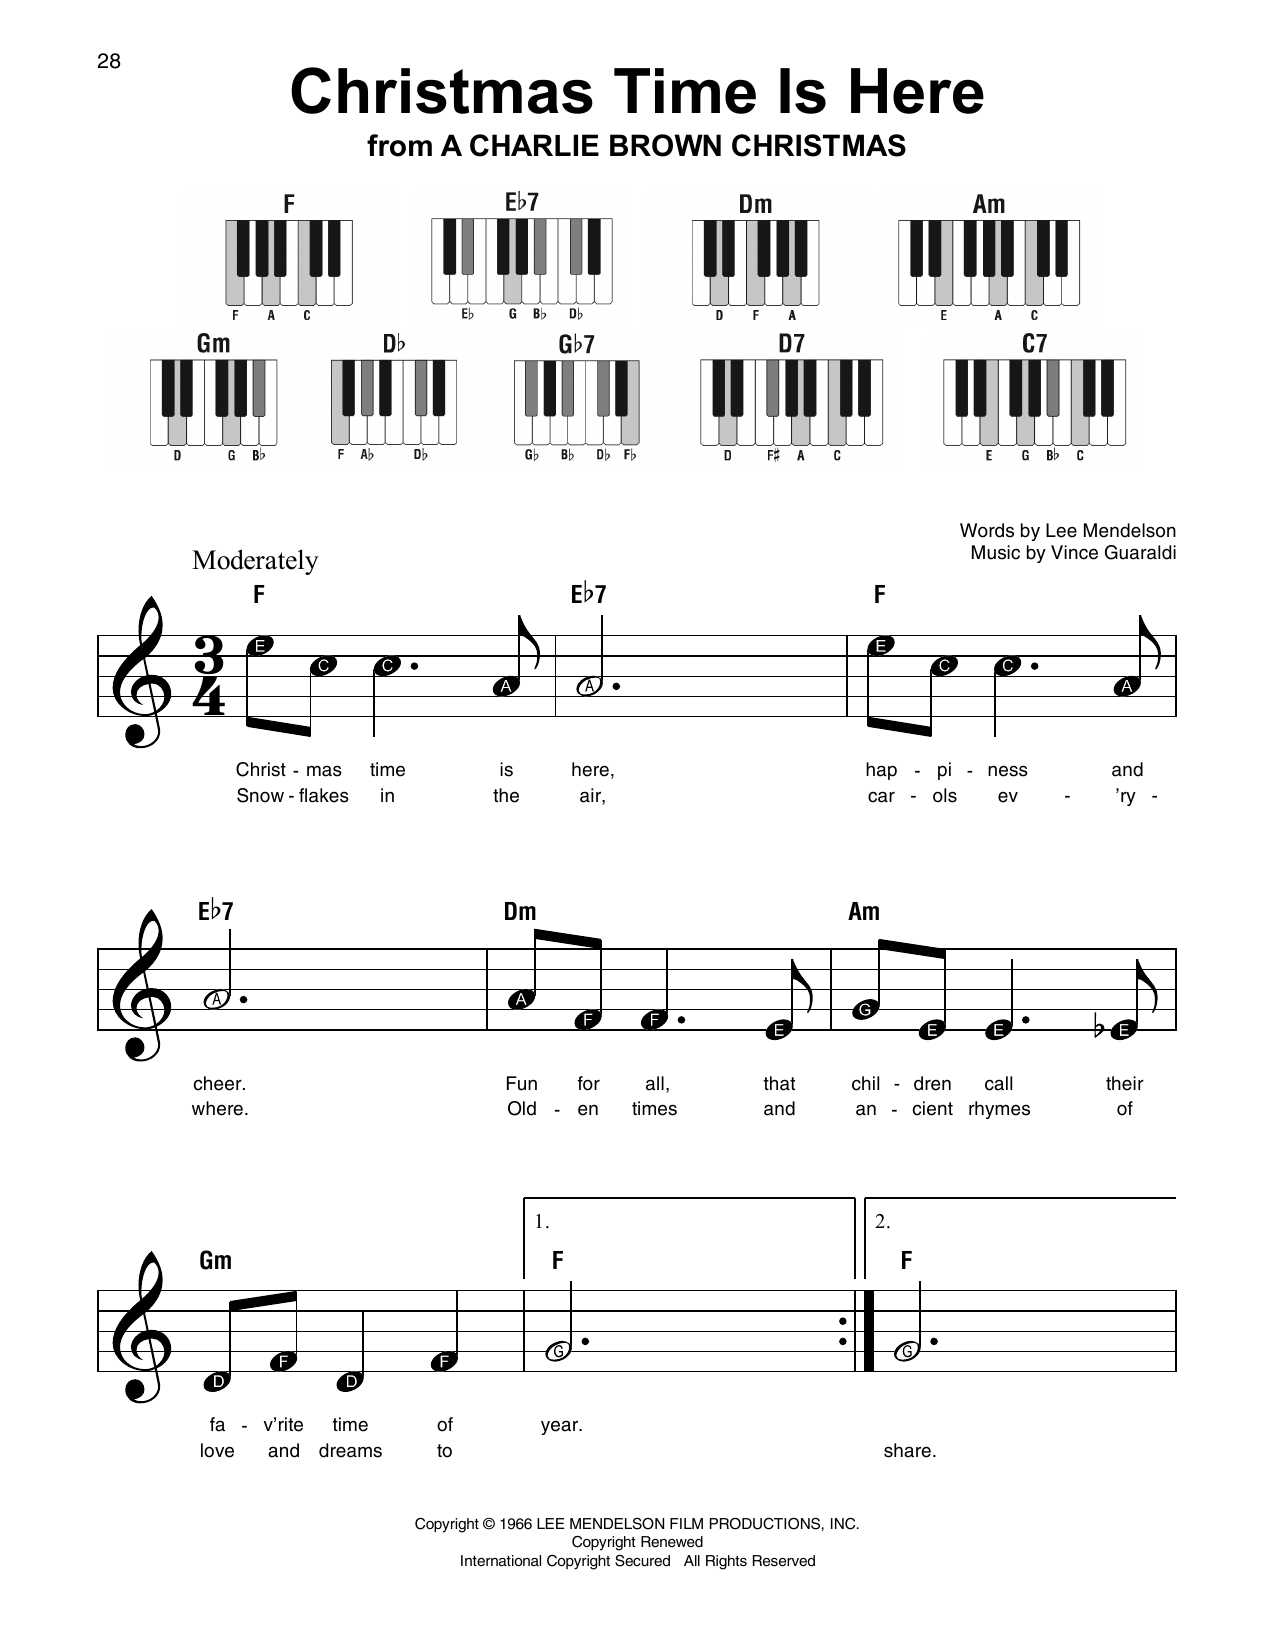 Christmas Time Is Here Sheet Music.Christmas Time Is Here By Lee Mendelson Super Easy Piano Digital Sheet Music